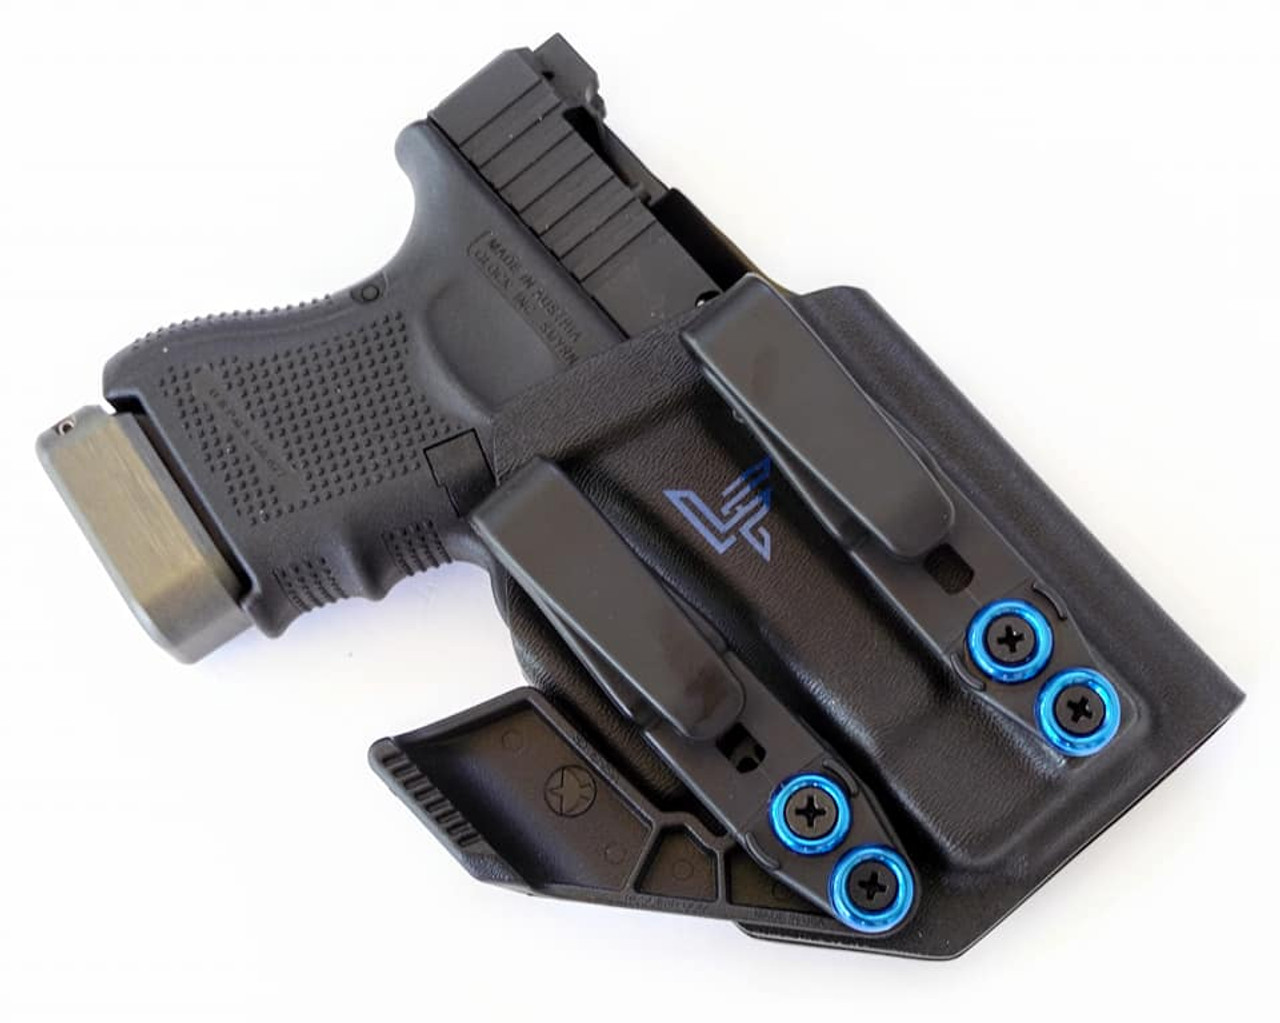 Glock 26 Appendix Carry Holster